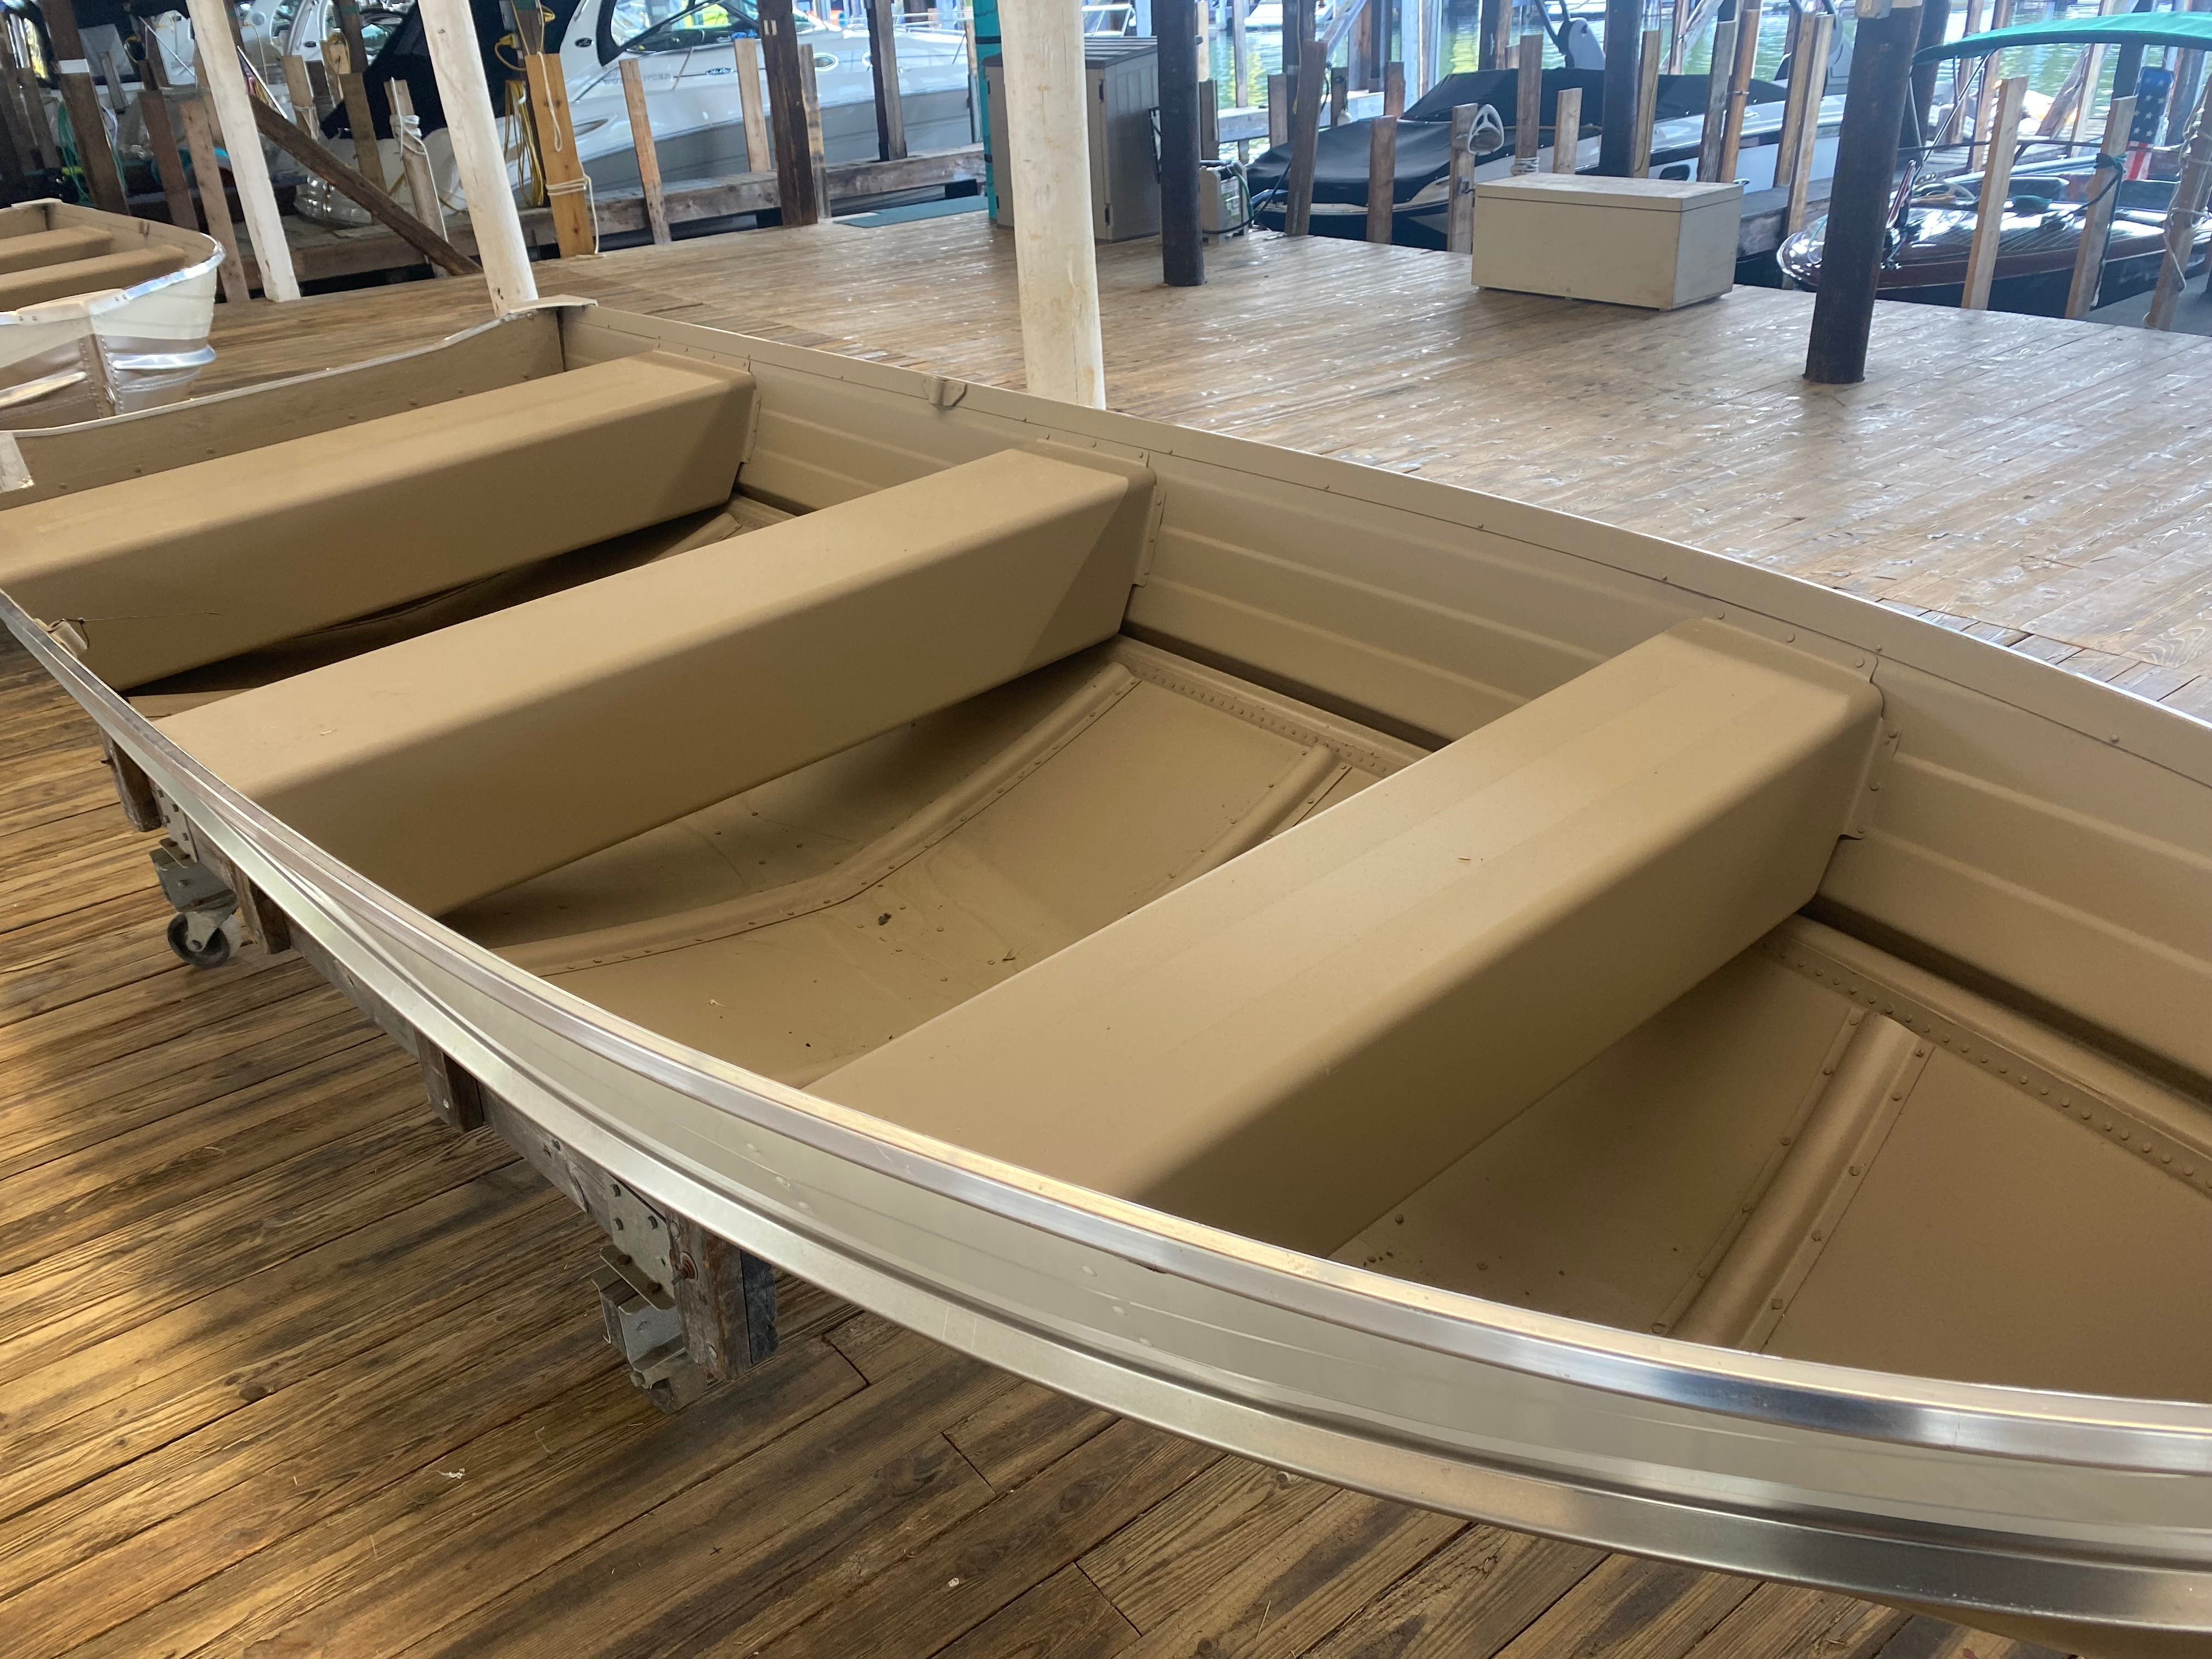 2022 Starcraft boat for sale, model of the boat is 14 SEALITE TS & Image # 4 of 6